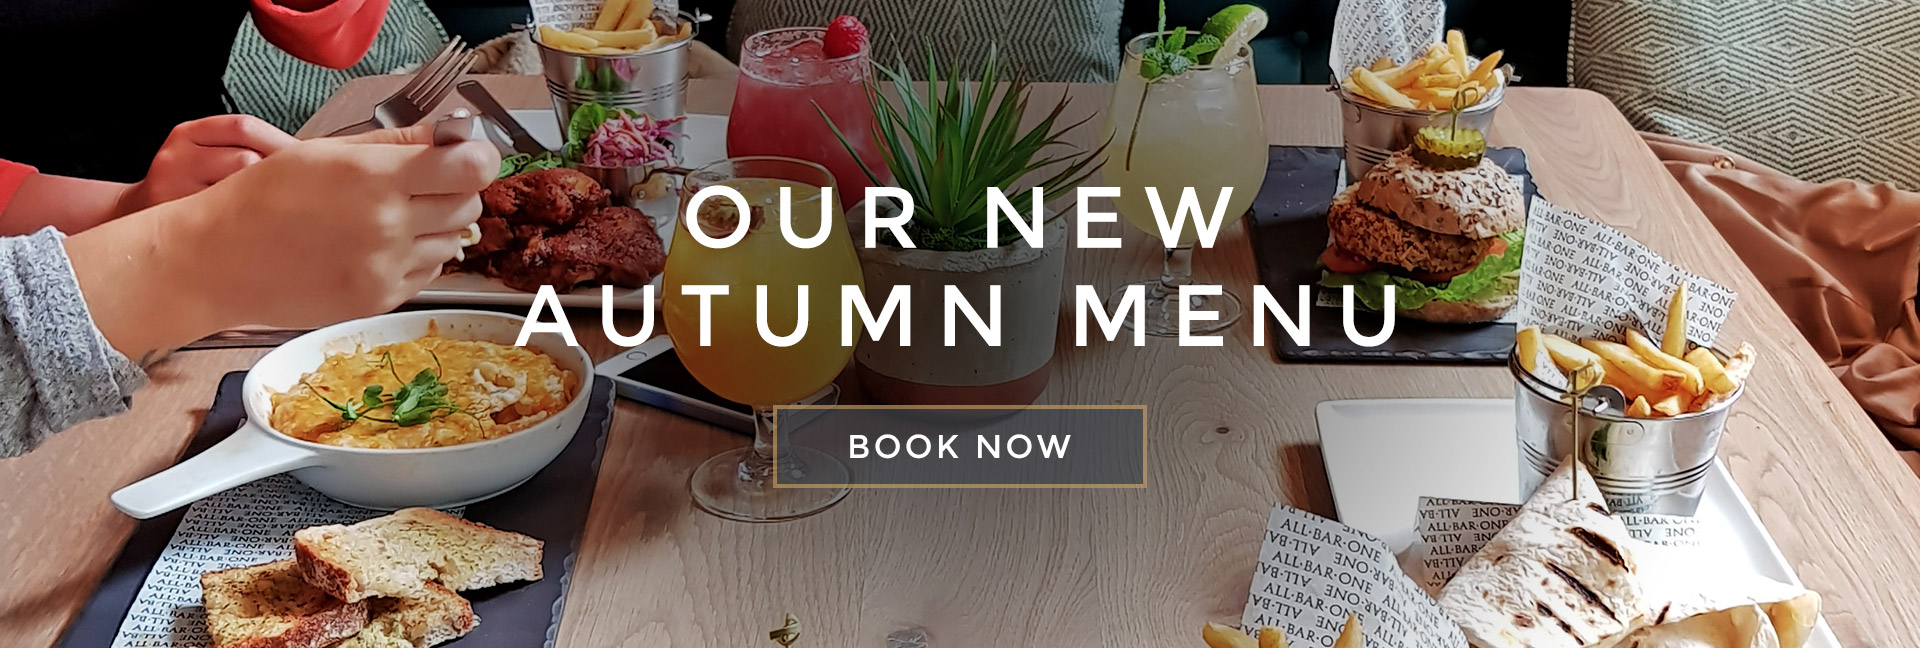 Our new Autumn menu at All Bar One New Street Station - Book now